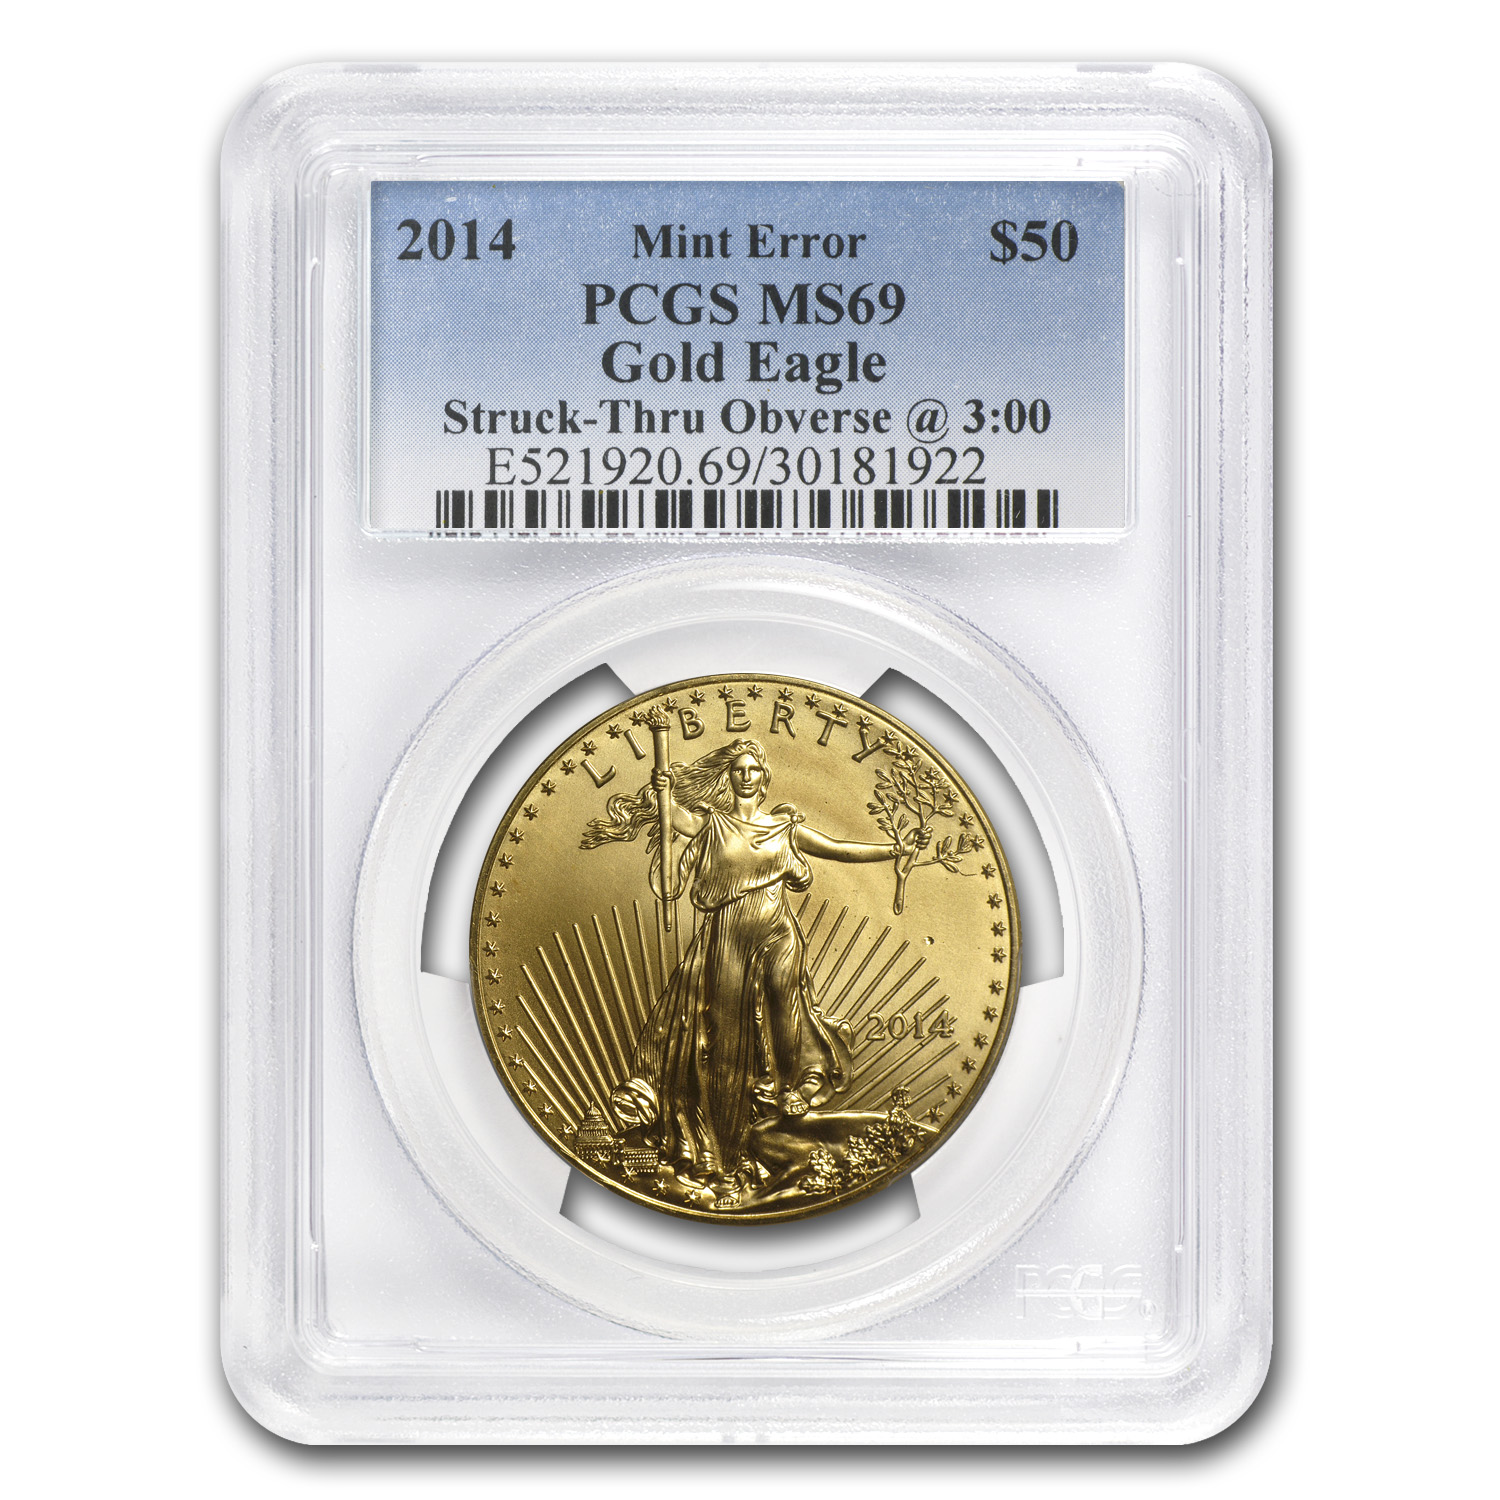 2014 1 oz Gold Eagle Mint Error MS-69 PCGS (Obv Struck Thru)